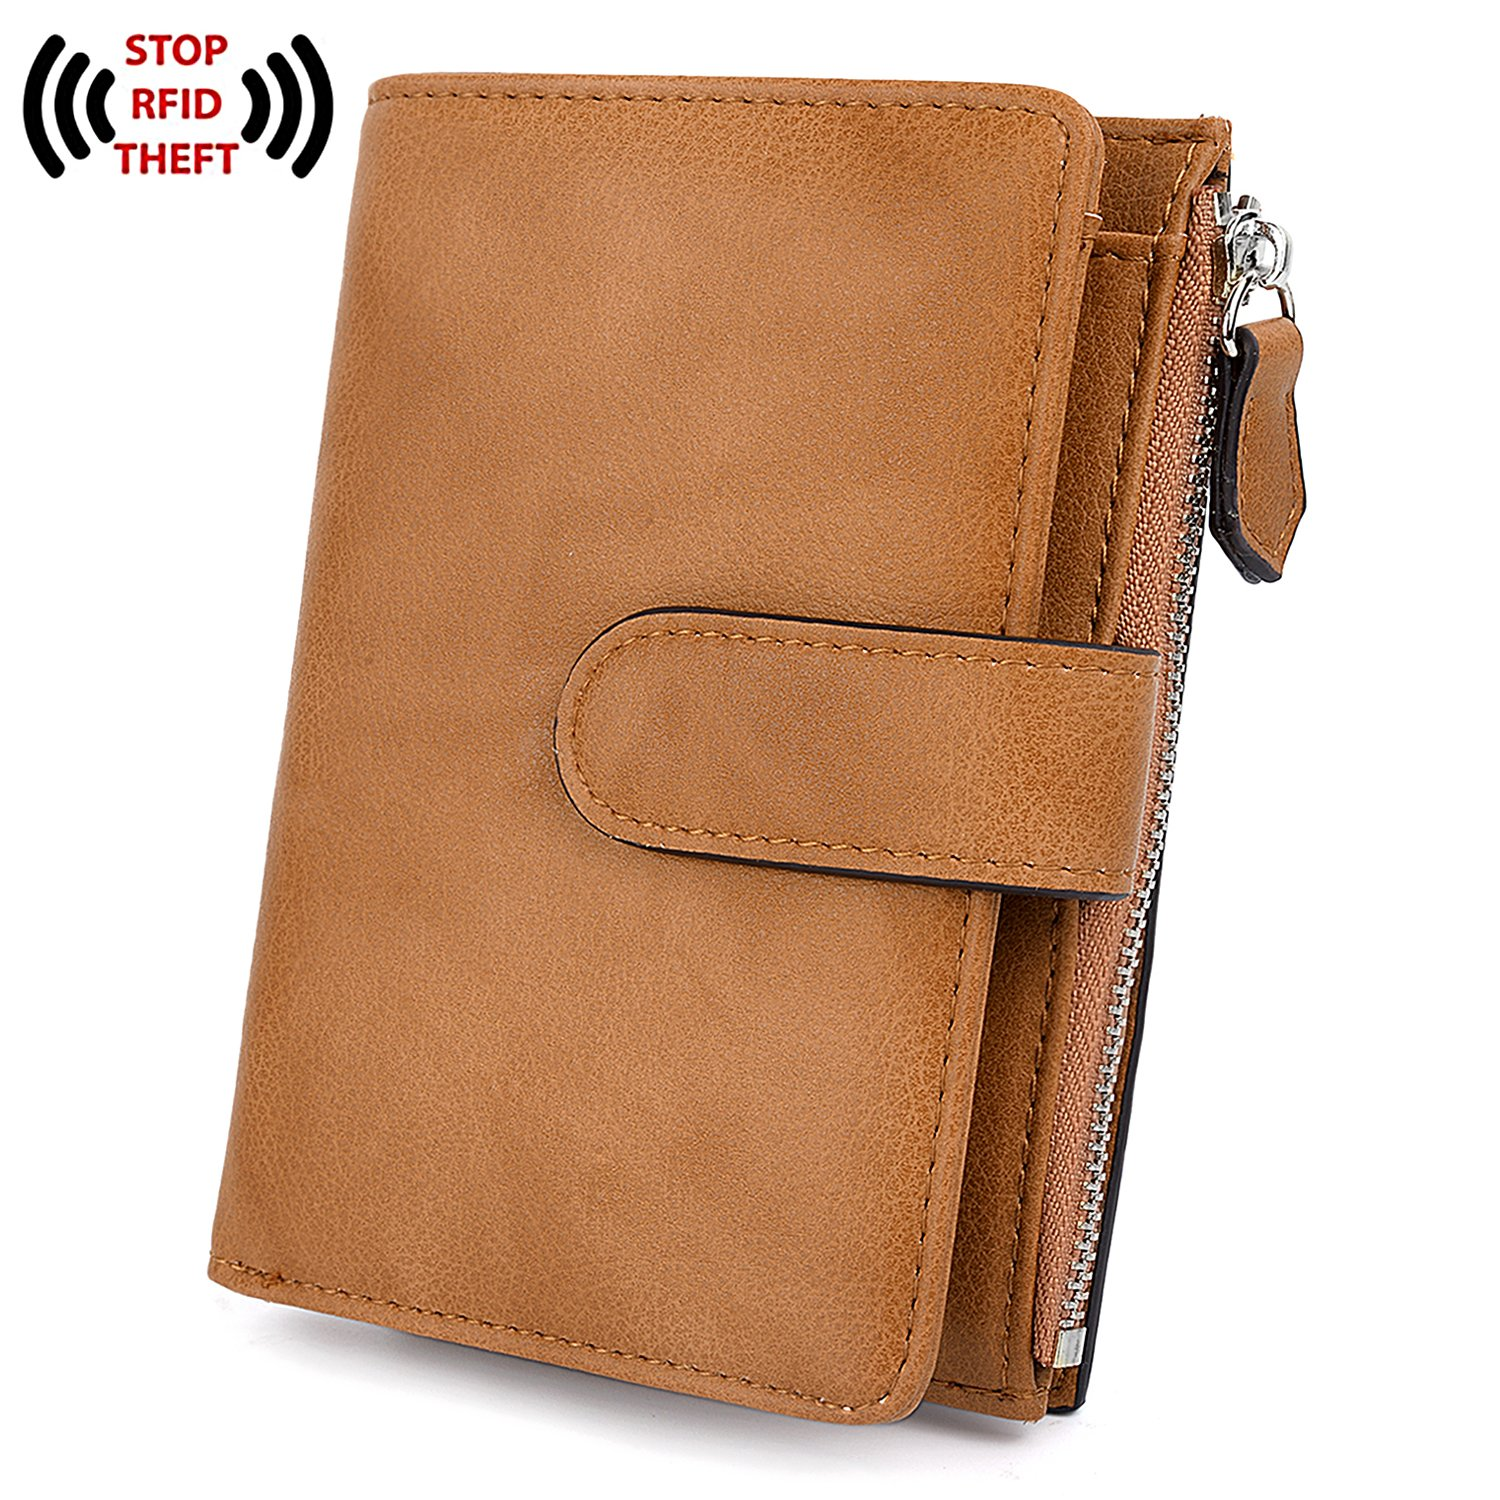 UTO RFID Wallet for Women PU Leather 15 Card Holder Zipper Coin Pocket Brown